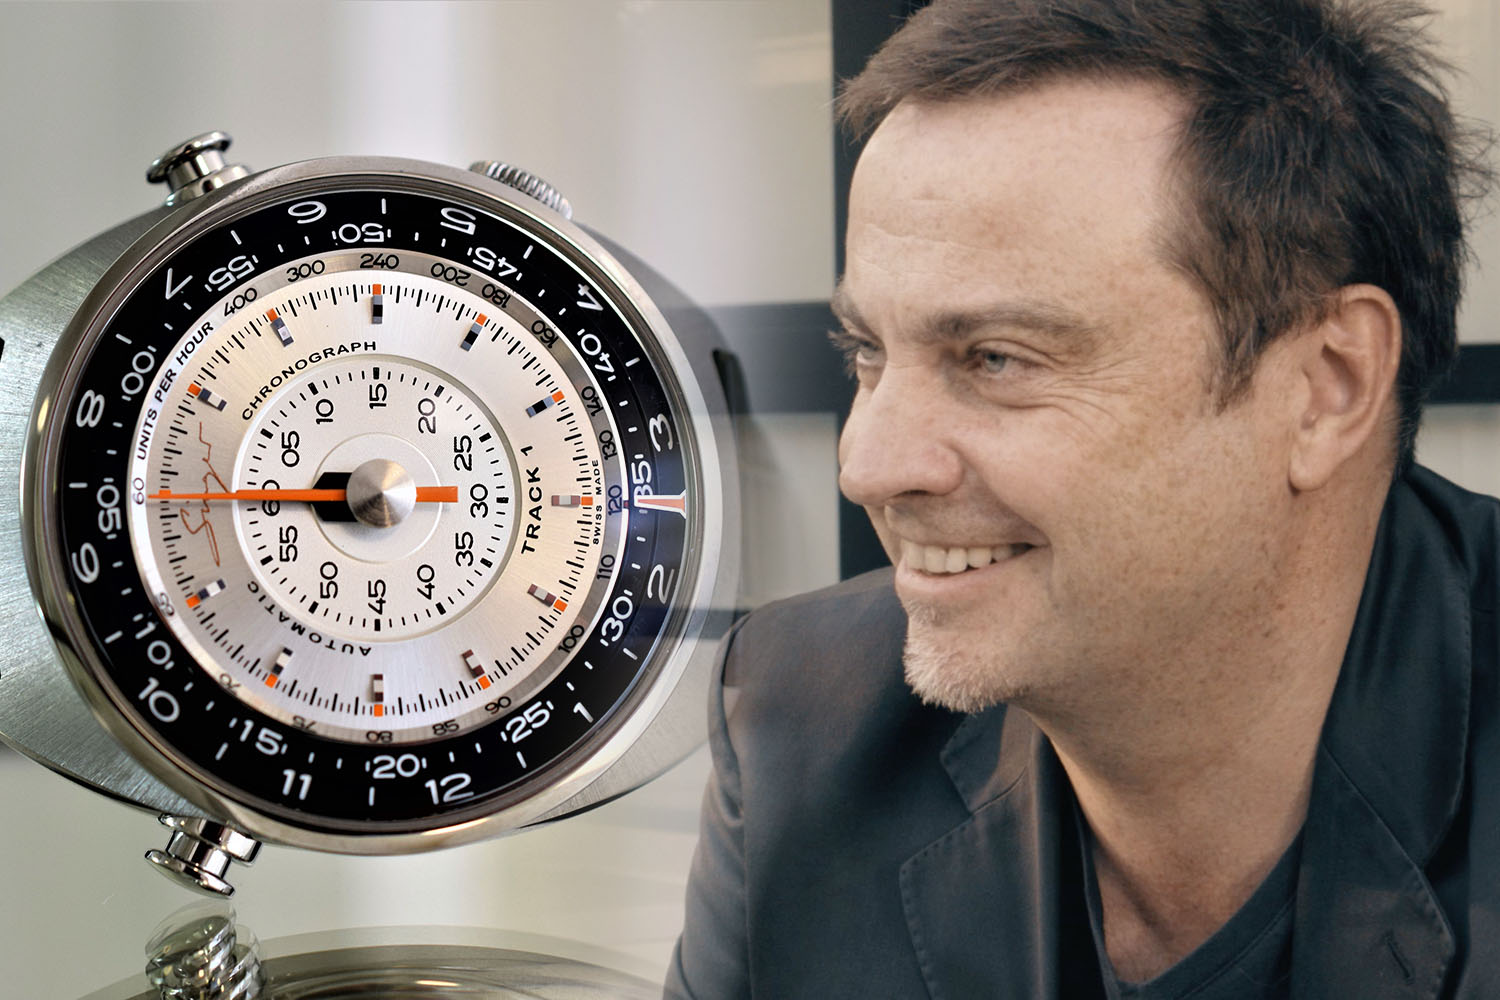 Talking Cars and Watches, The Track1 Chronograph And the Reimagined 911 With Rob Dickinson